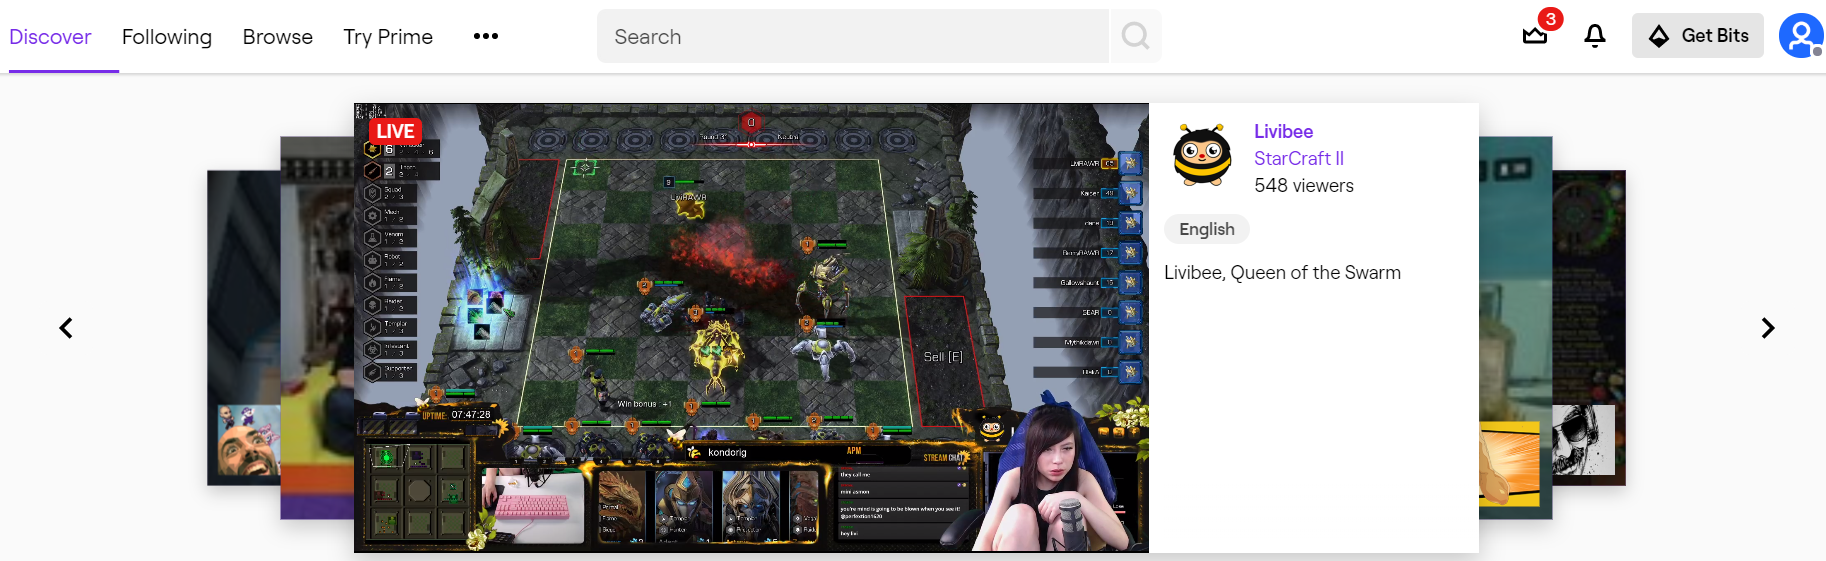 Twitch Live Video Streaming Website